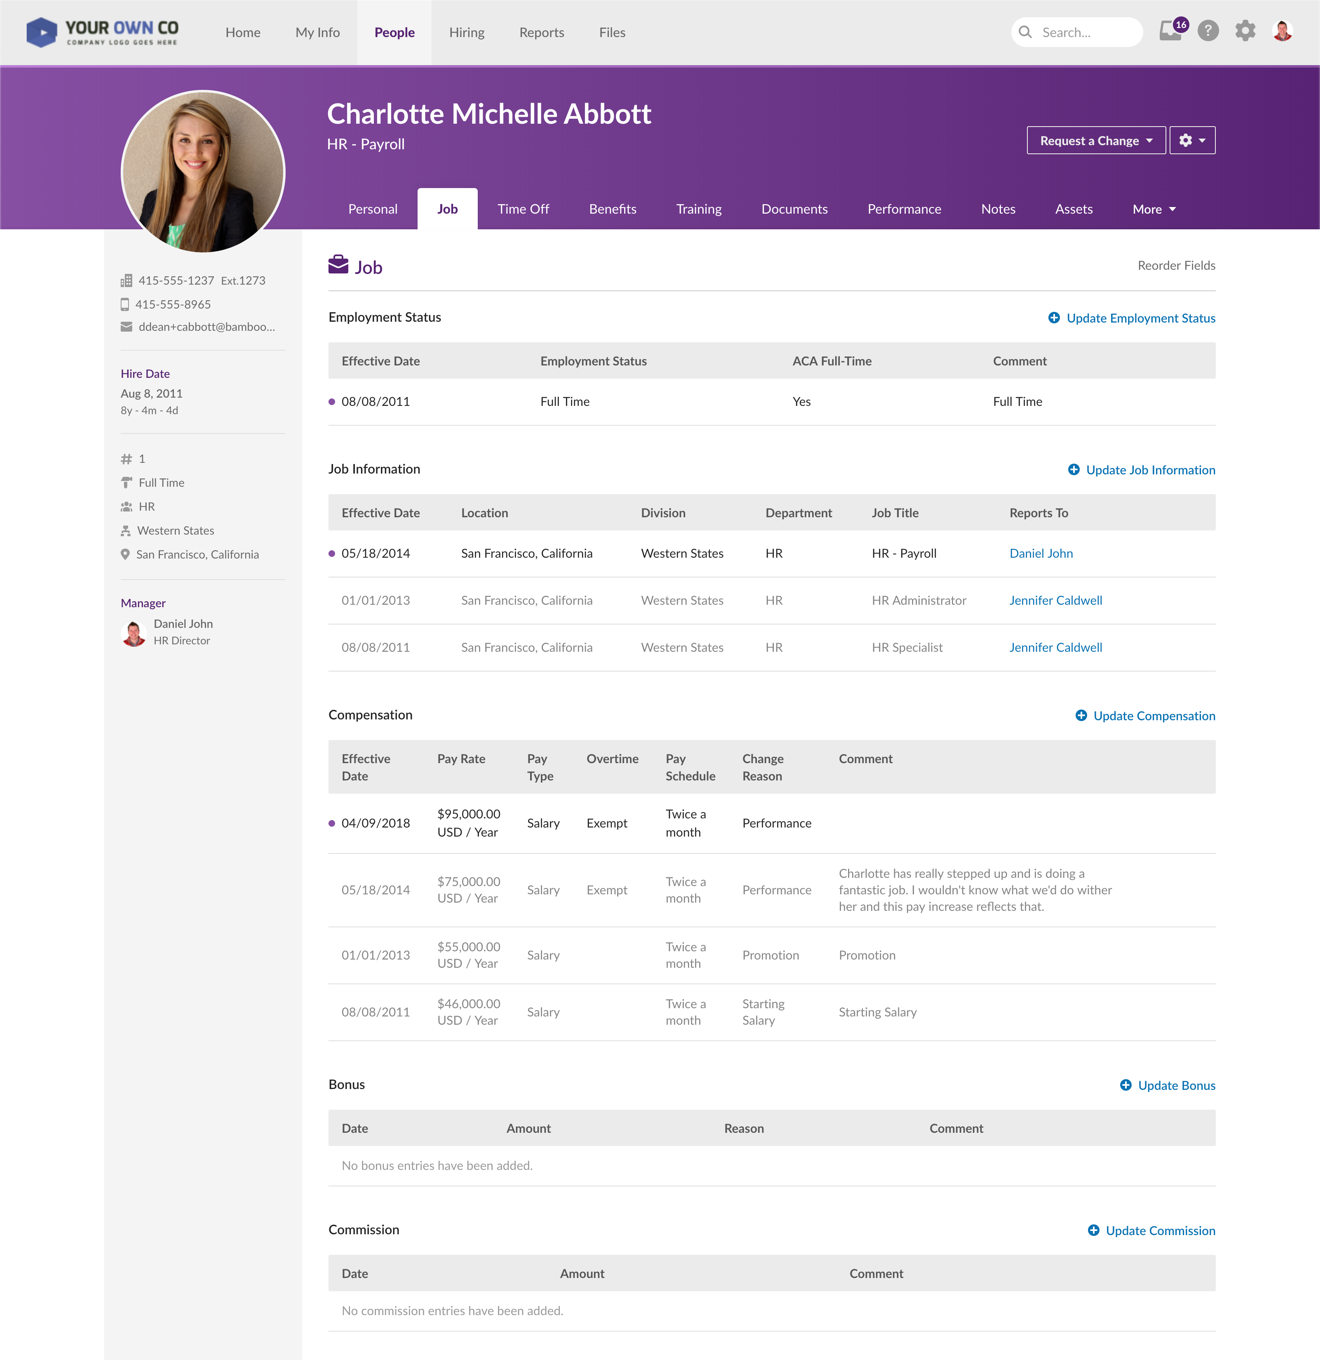 BambooHR Software - Employee Records